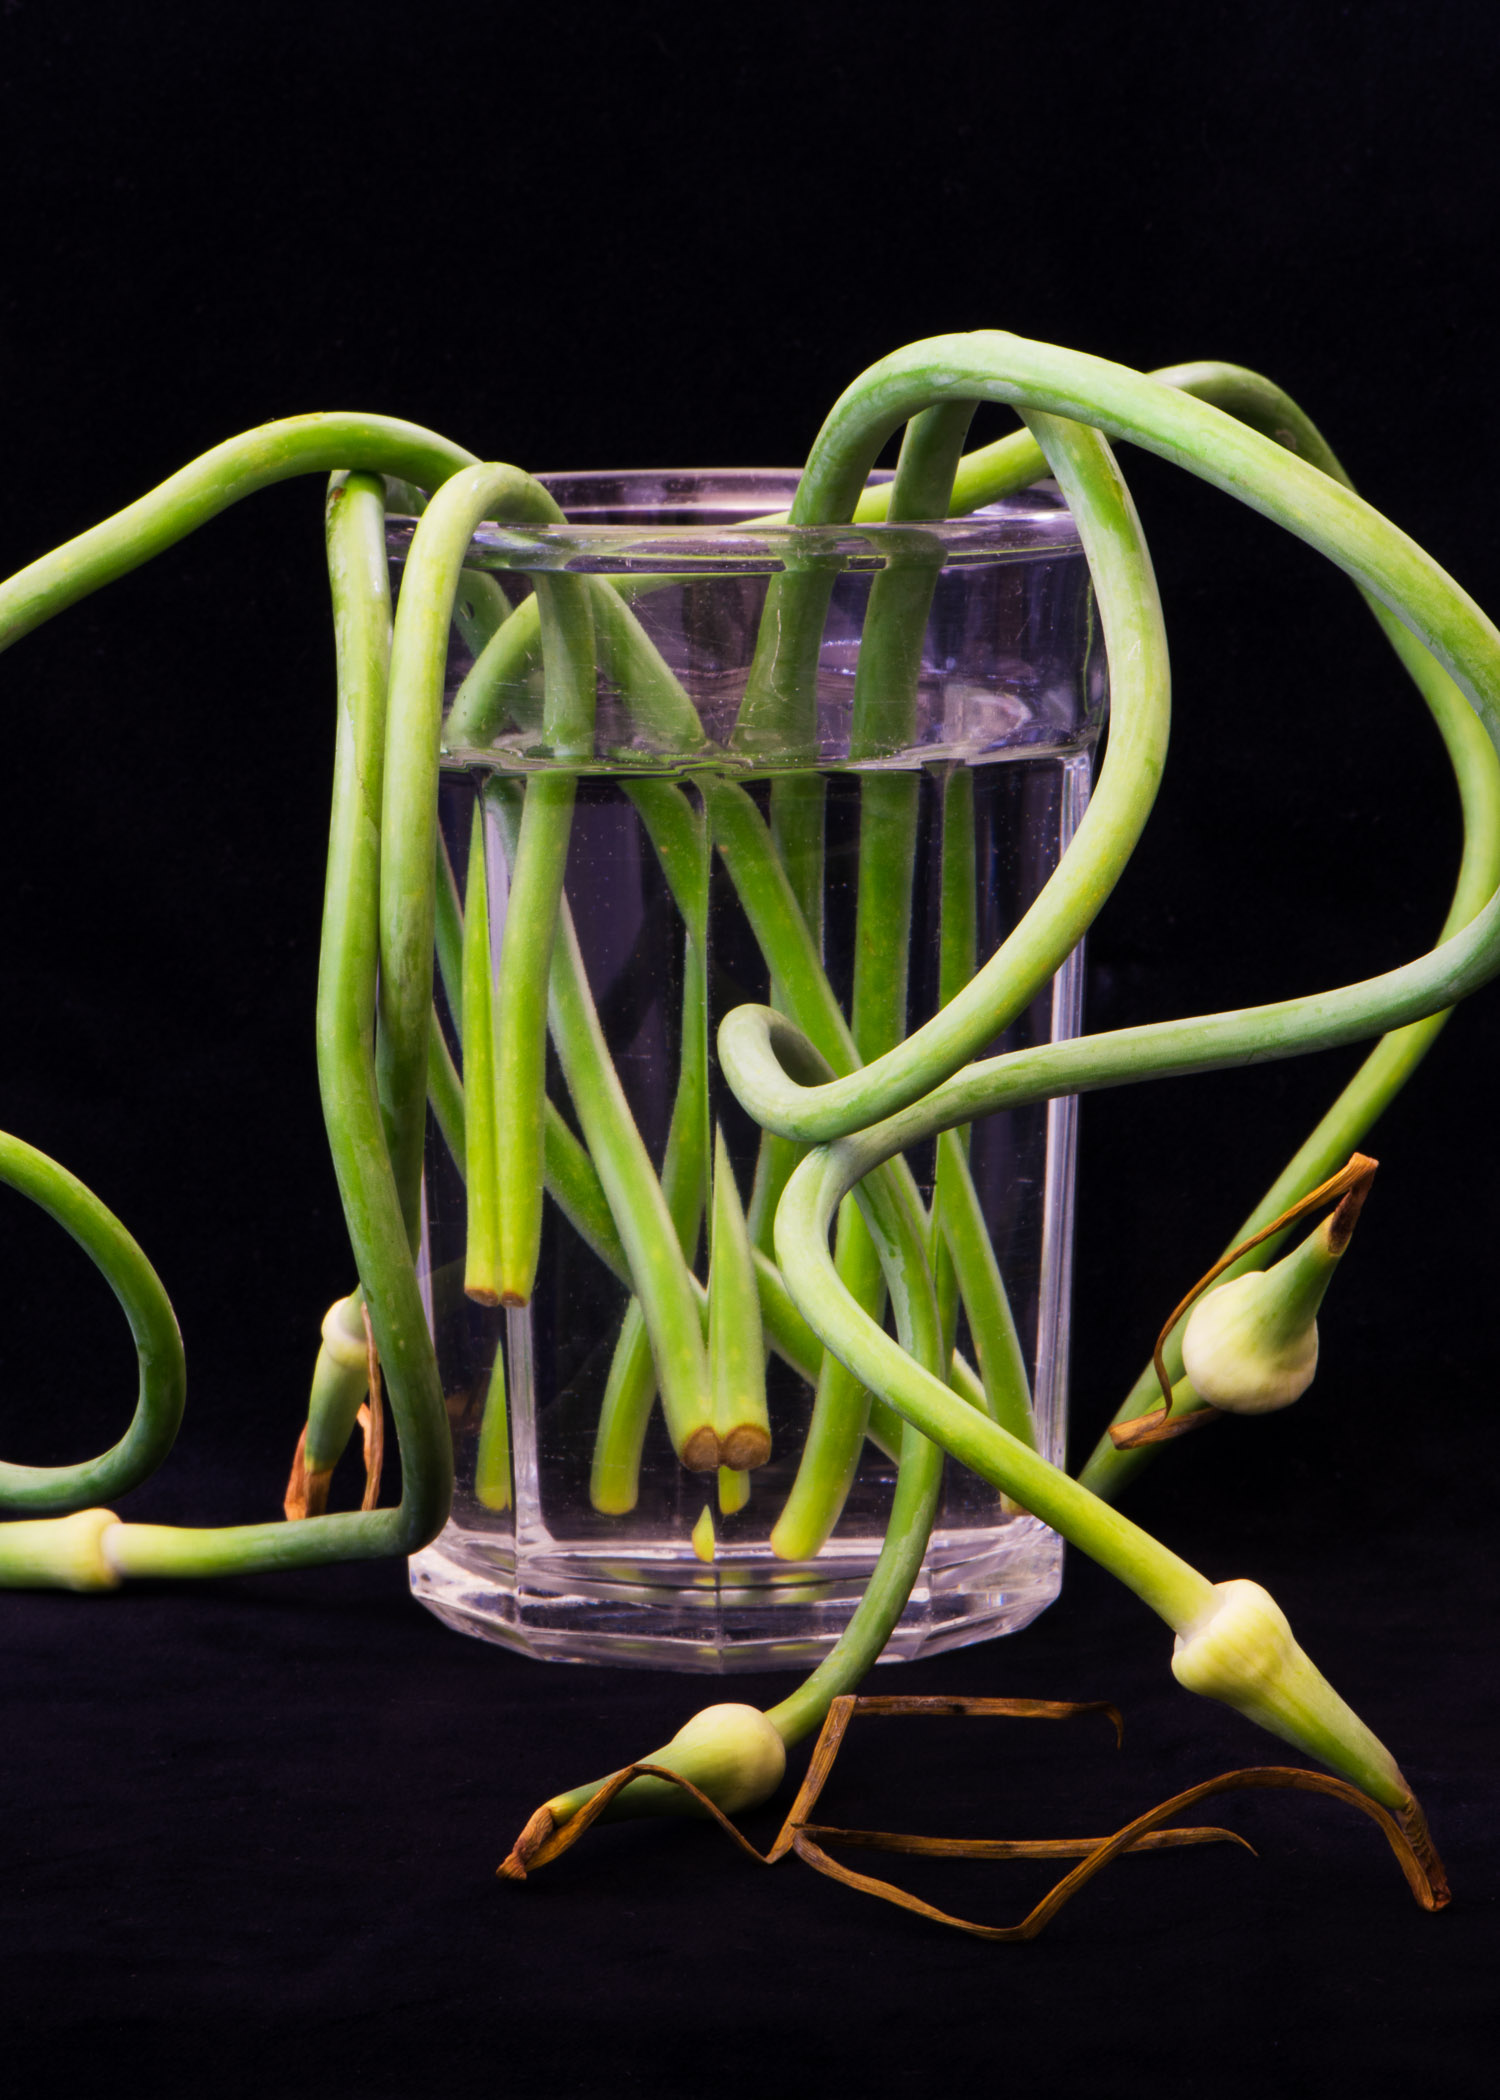 Scapes in Water Glass